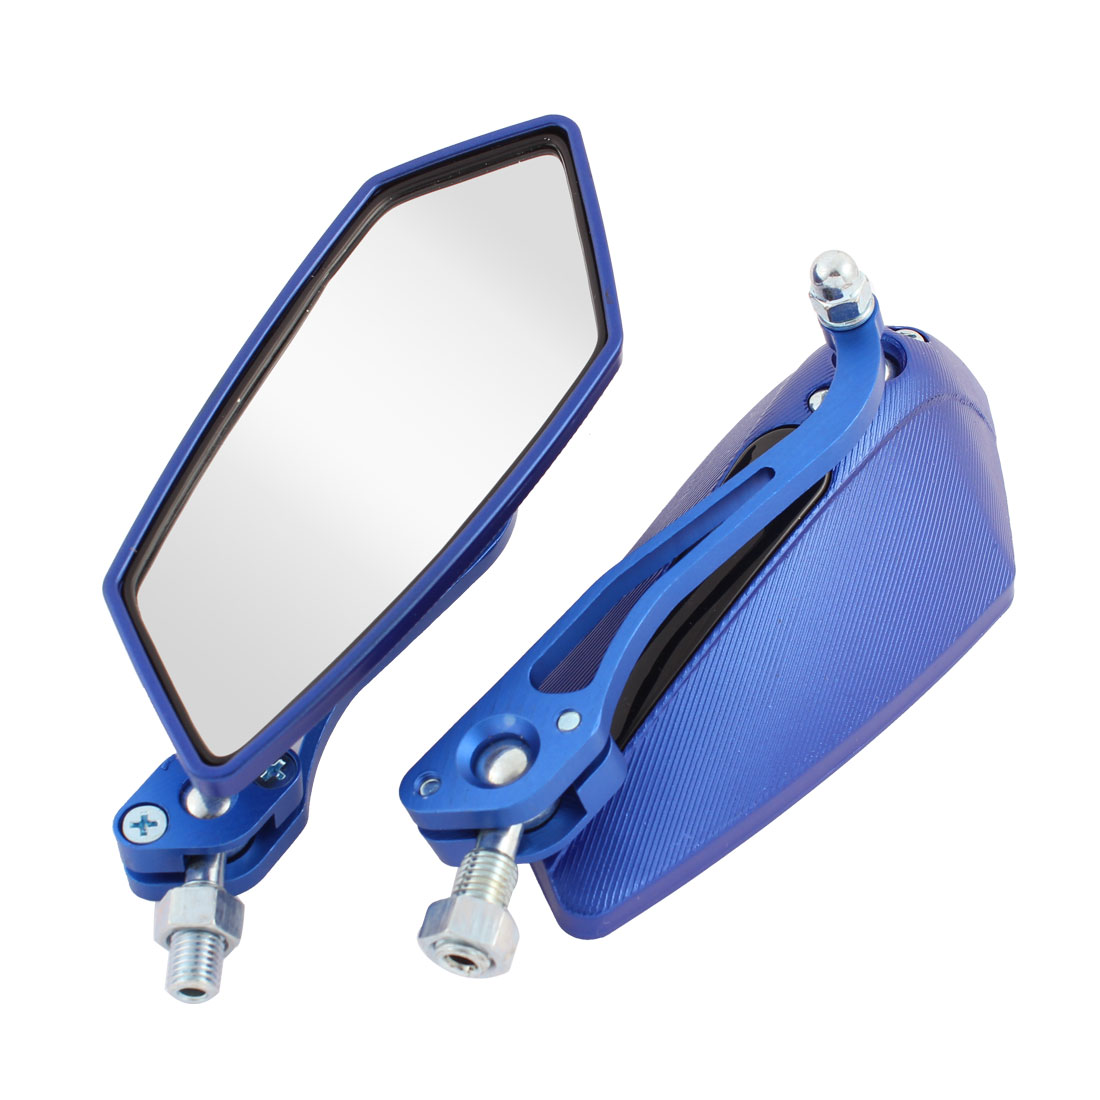 2 Pcs Blue Shell Polygon Shaped Motorcycle Adjustable Blind Spot Rear View Mirror